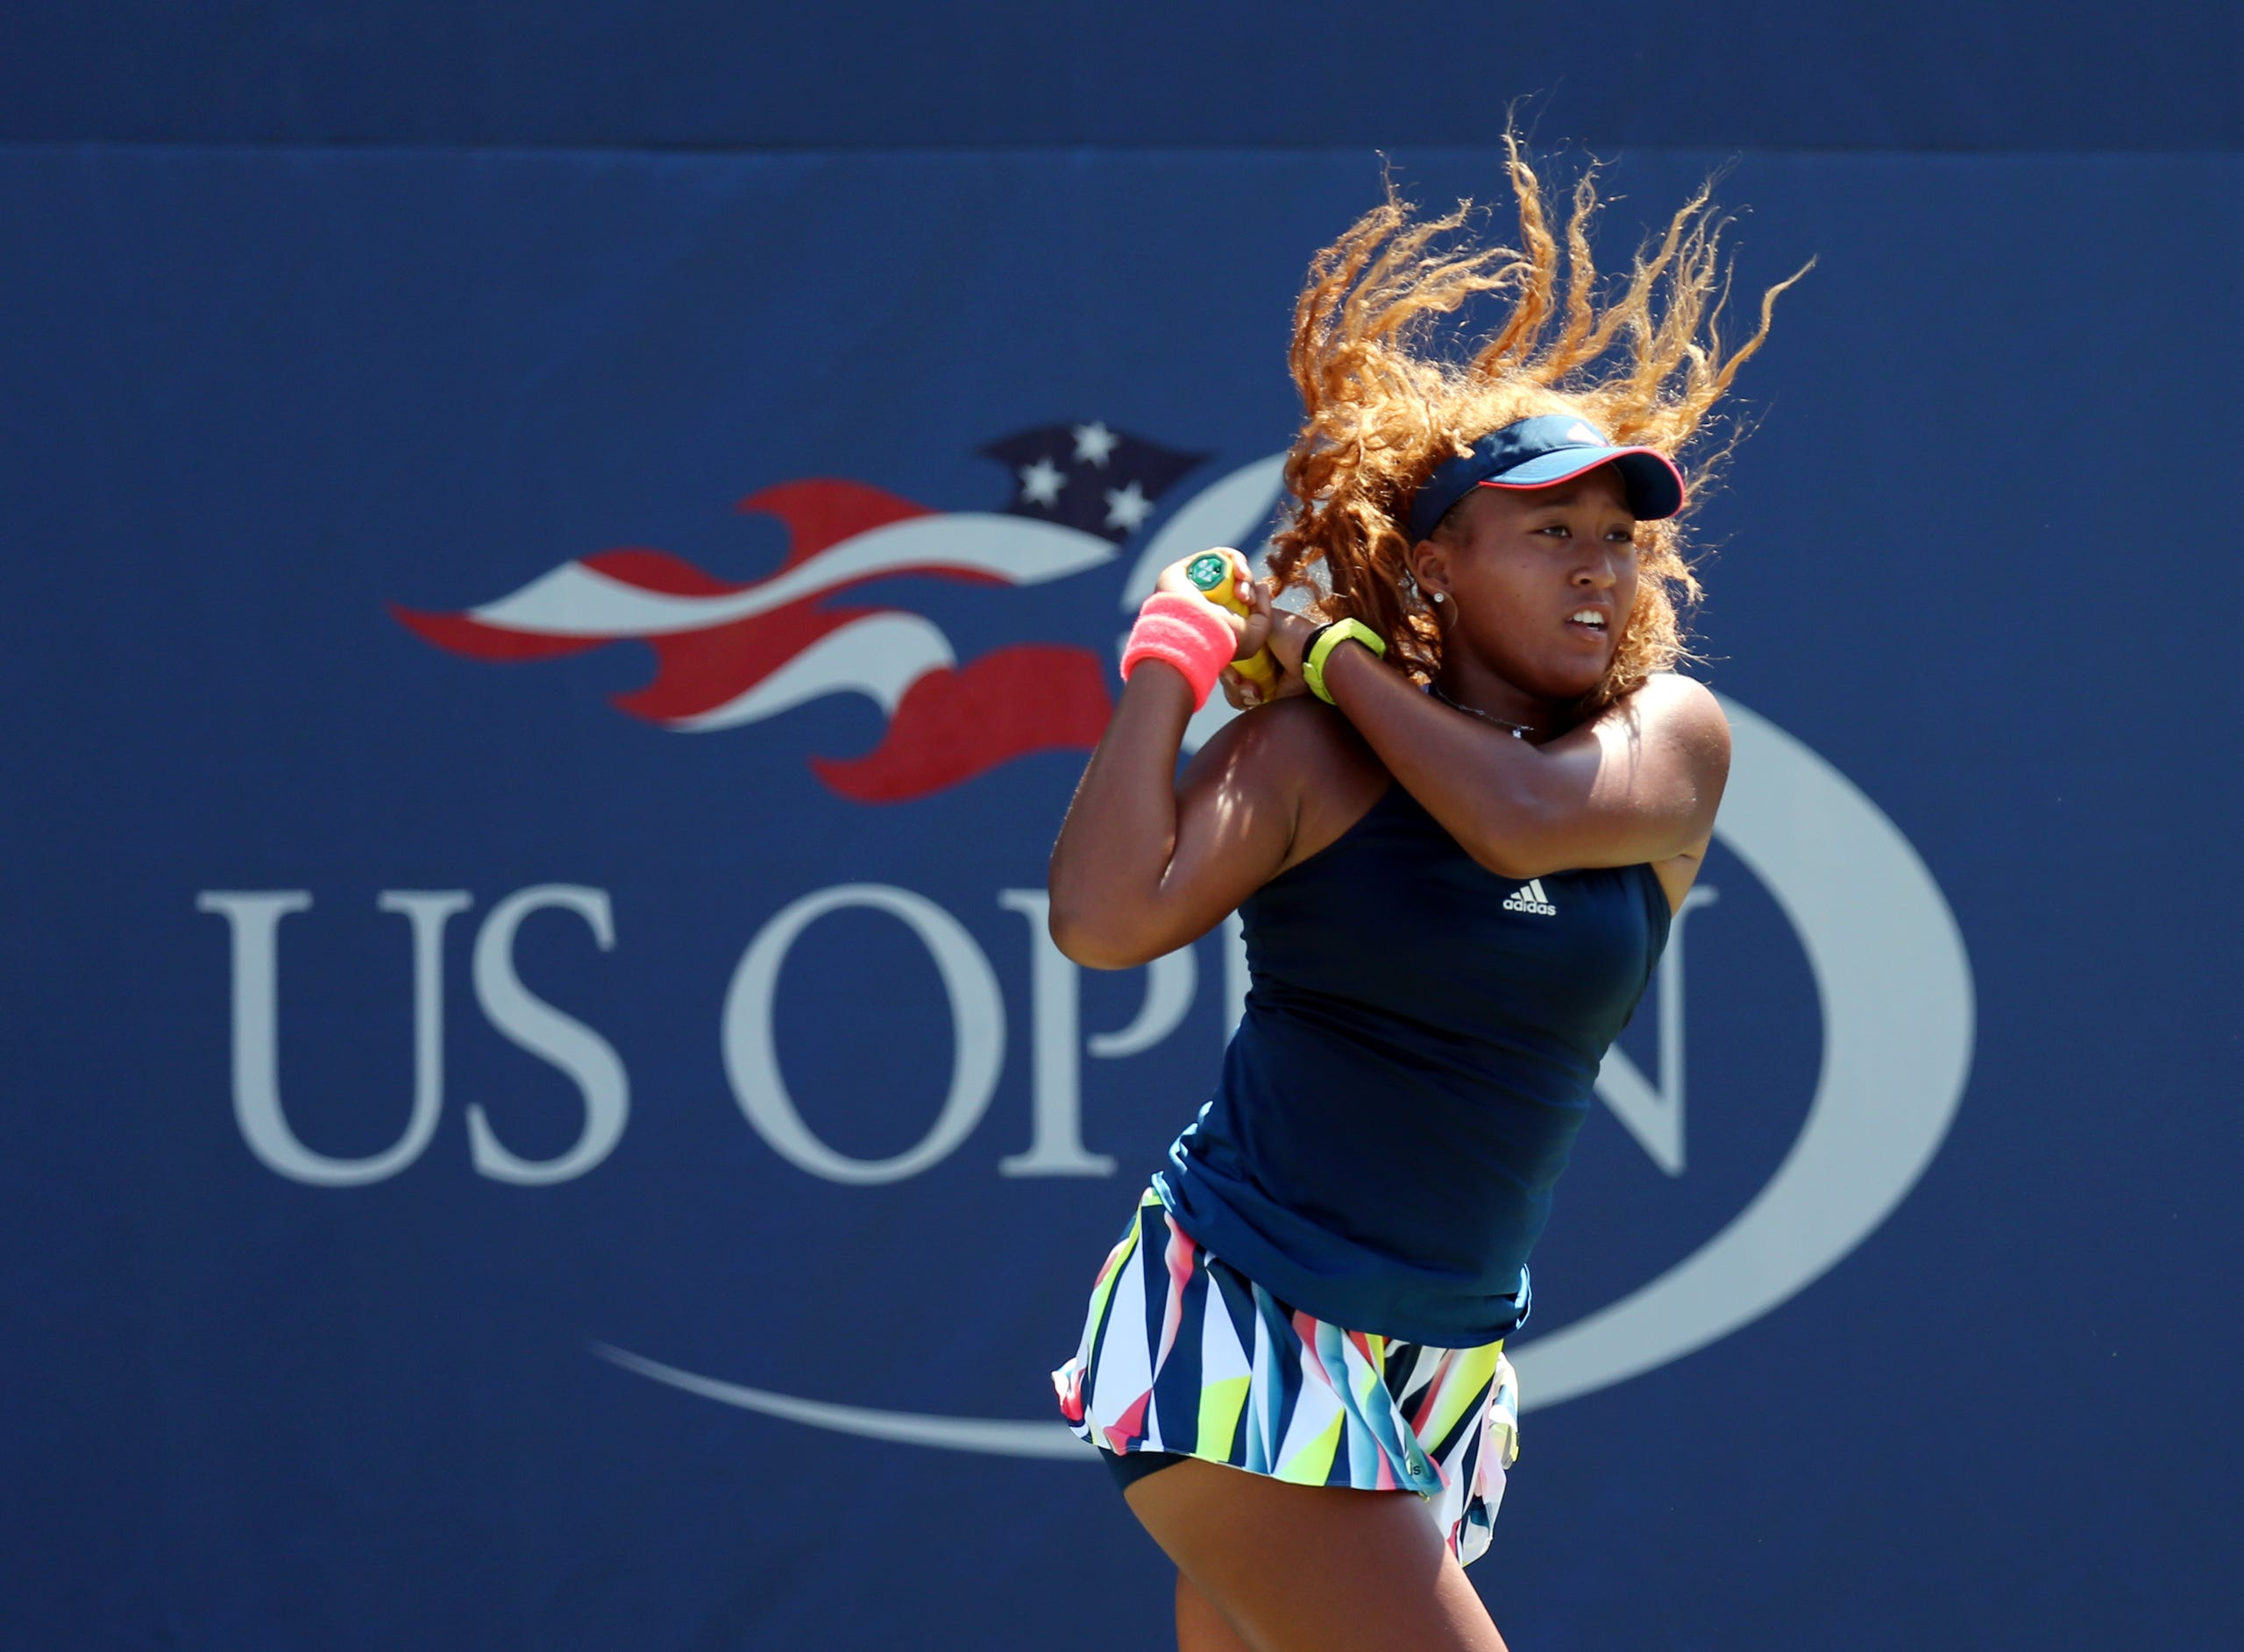 Naomi Osaka of Japan in action against Coco Vandeweghe of the United States on day one of the 2016 U.S. Open tennis tournament at USTA Billie Jean King National Tennis Center on August 29, 2016.